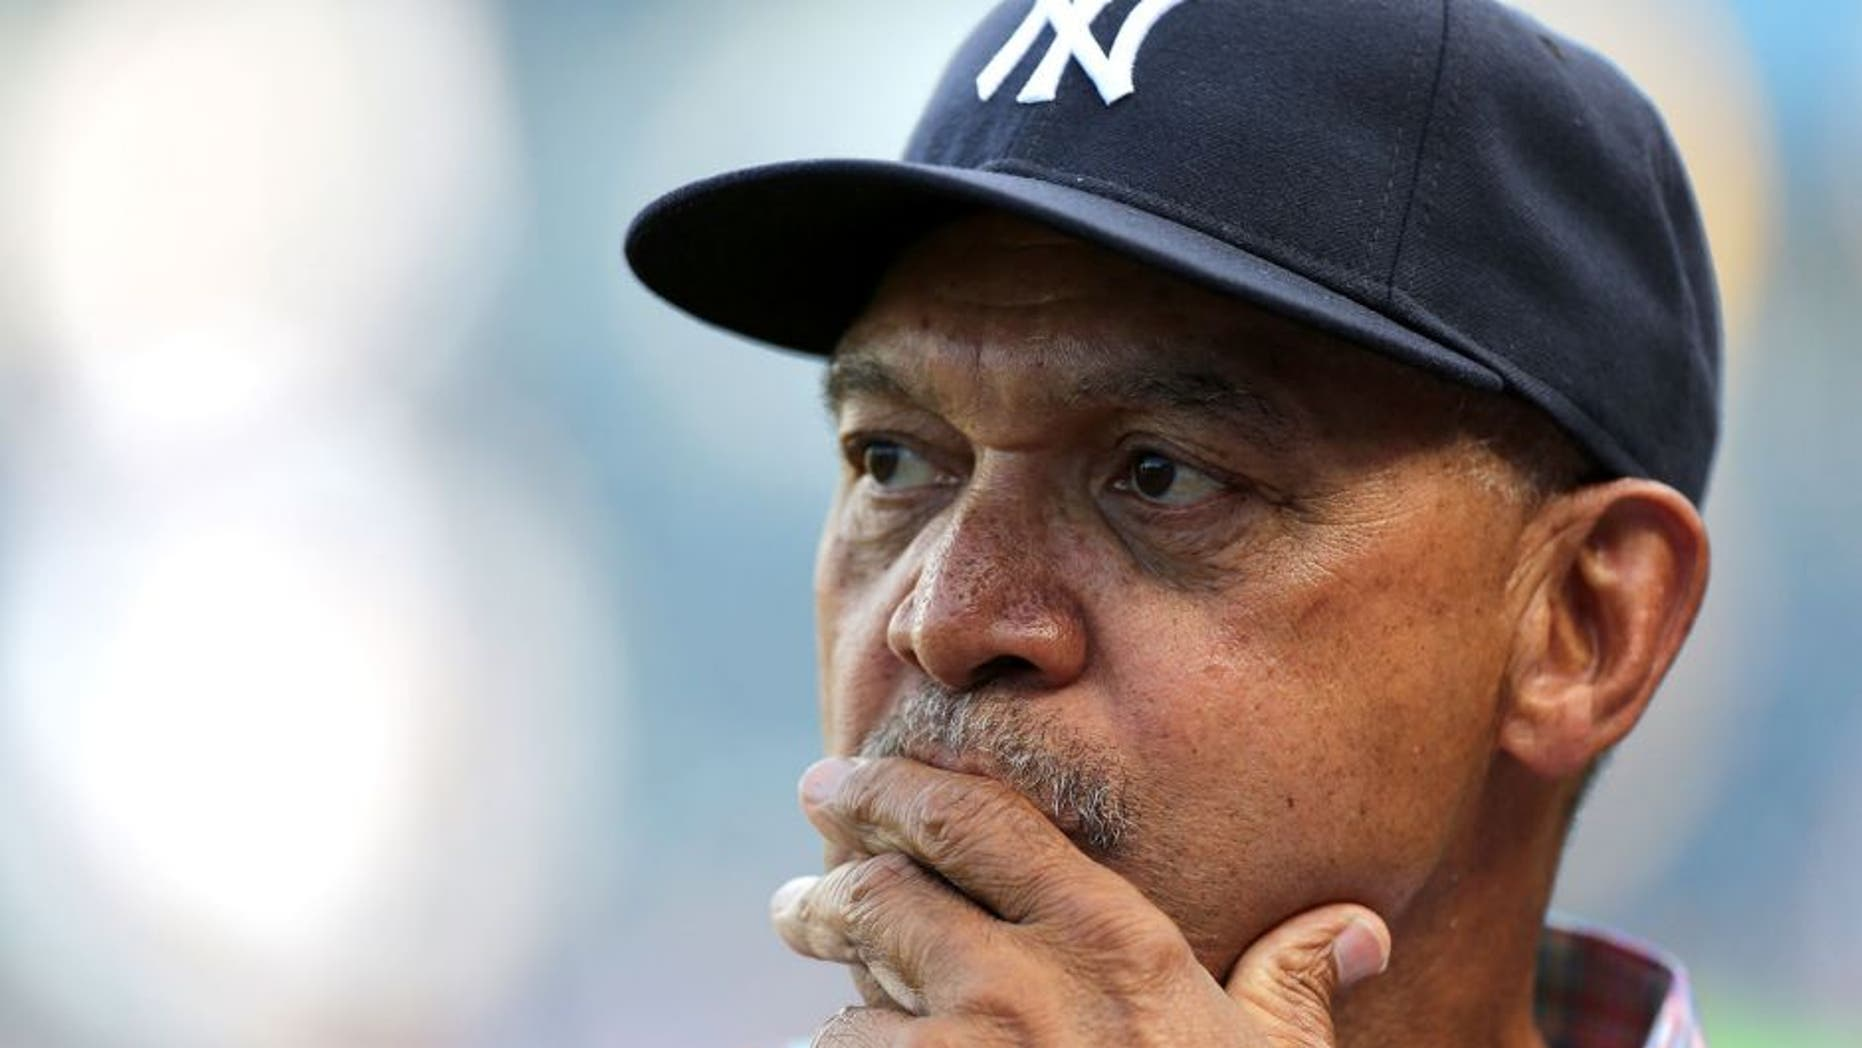 KANSAS CITY, MO - JUNE 7: Reggie Jackson former New York Yankees player and Baseball Hall of Fame inductee watches batting practice prior to a game between the New York Yankees and Kansas City Royals at Kauffman Stadium on June 7, 2014 in Kansas City, Missouri. (Photo by Ed Zurga/Getty Images)